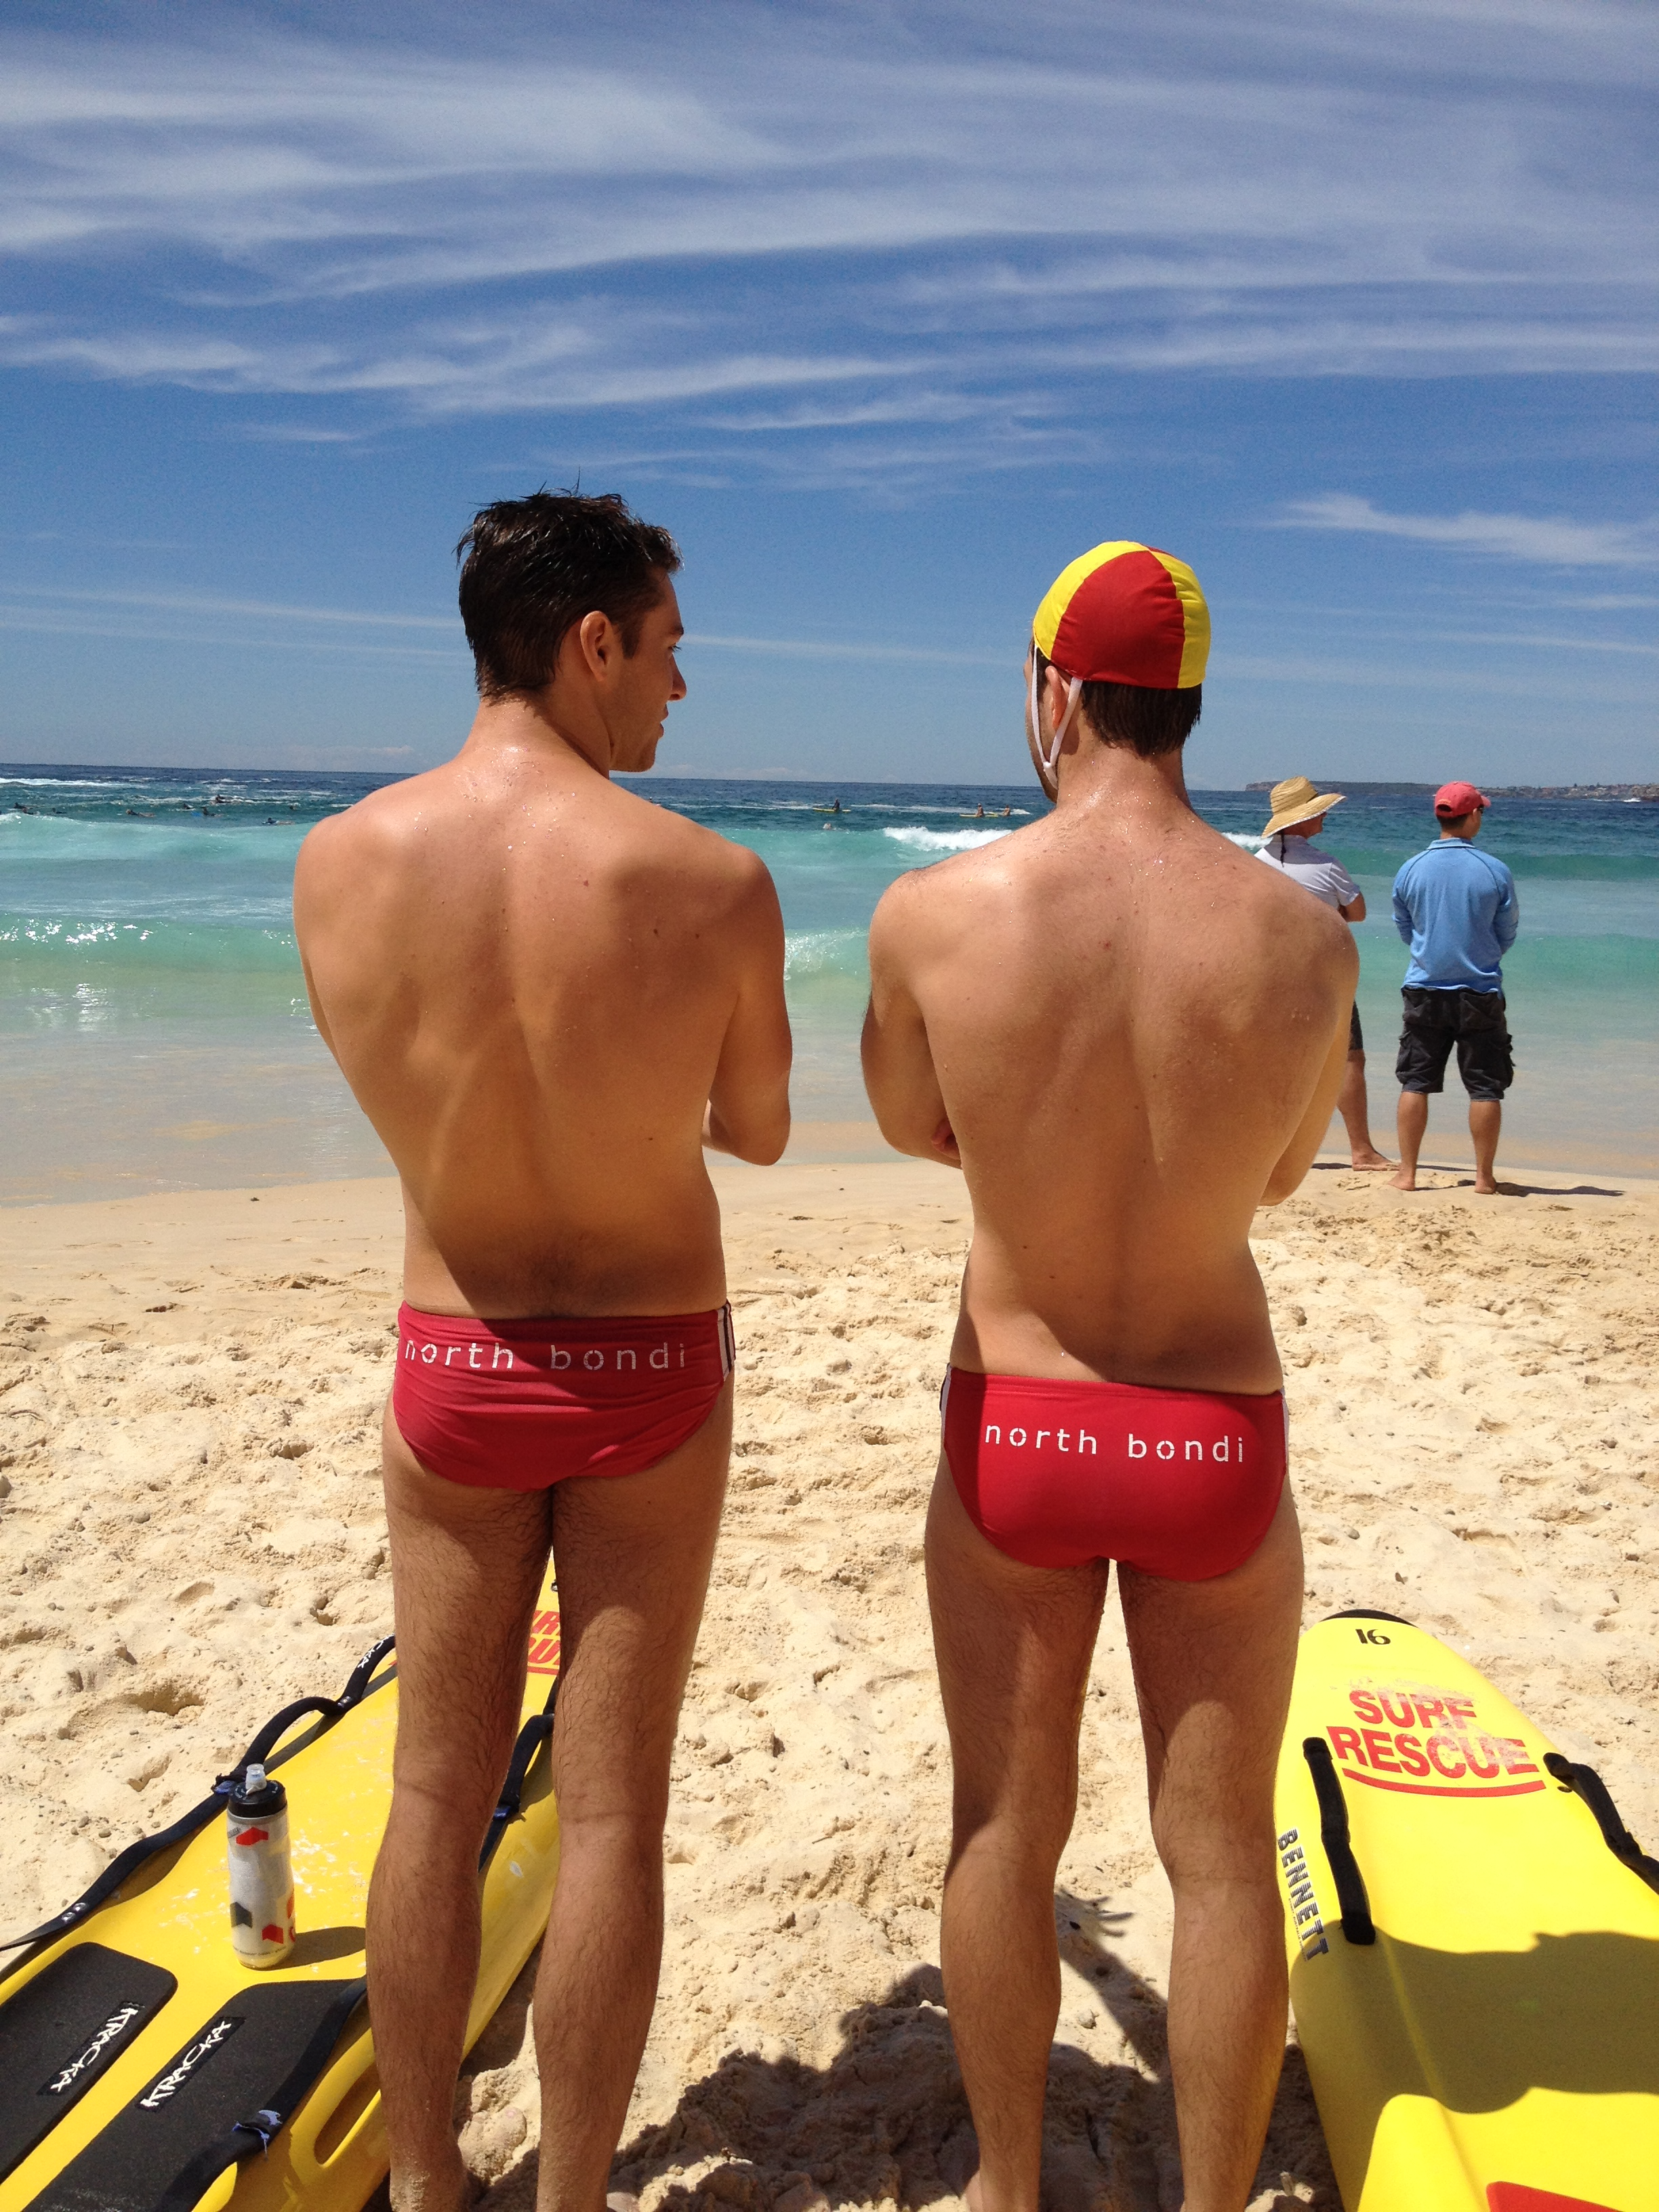 Yes - in Australia we often wear 'speedos', 'budgie smuggers' or 'togs' when patrolling Bondi Beach! Our two fearless models today are volunteer lifesavers from @northbondislsc Patrol 13 -@matteogrand and @jessekras.#bondibeach #northbondi Pic: Drew Lambert